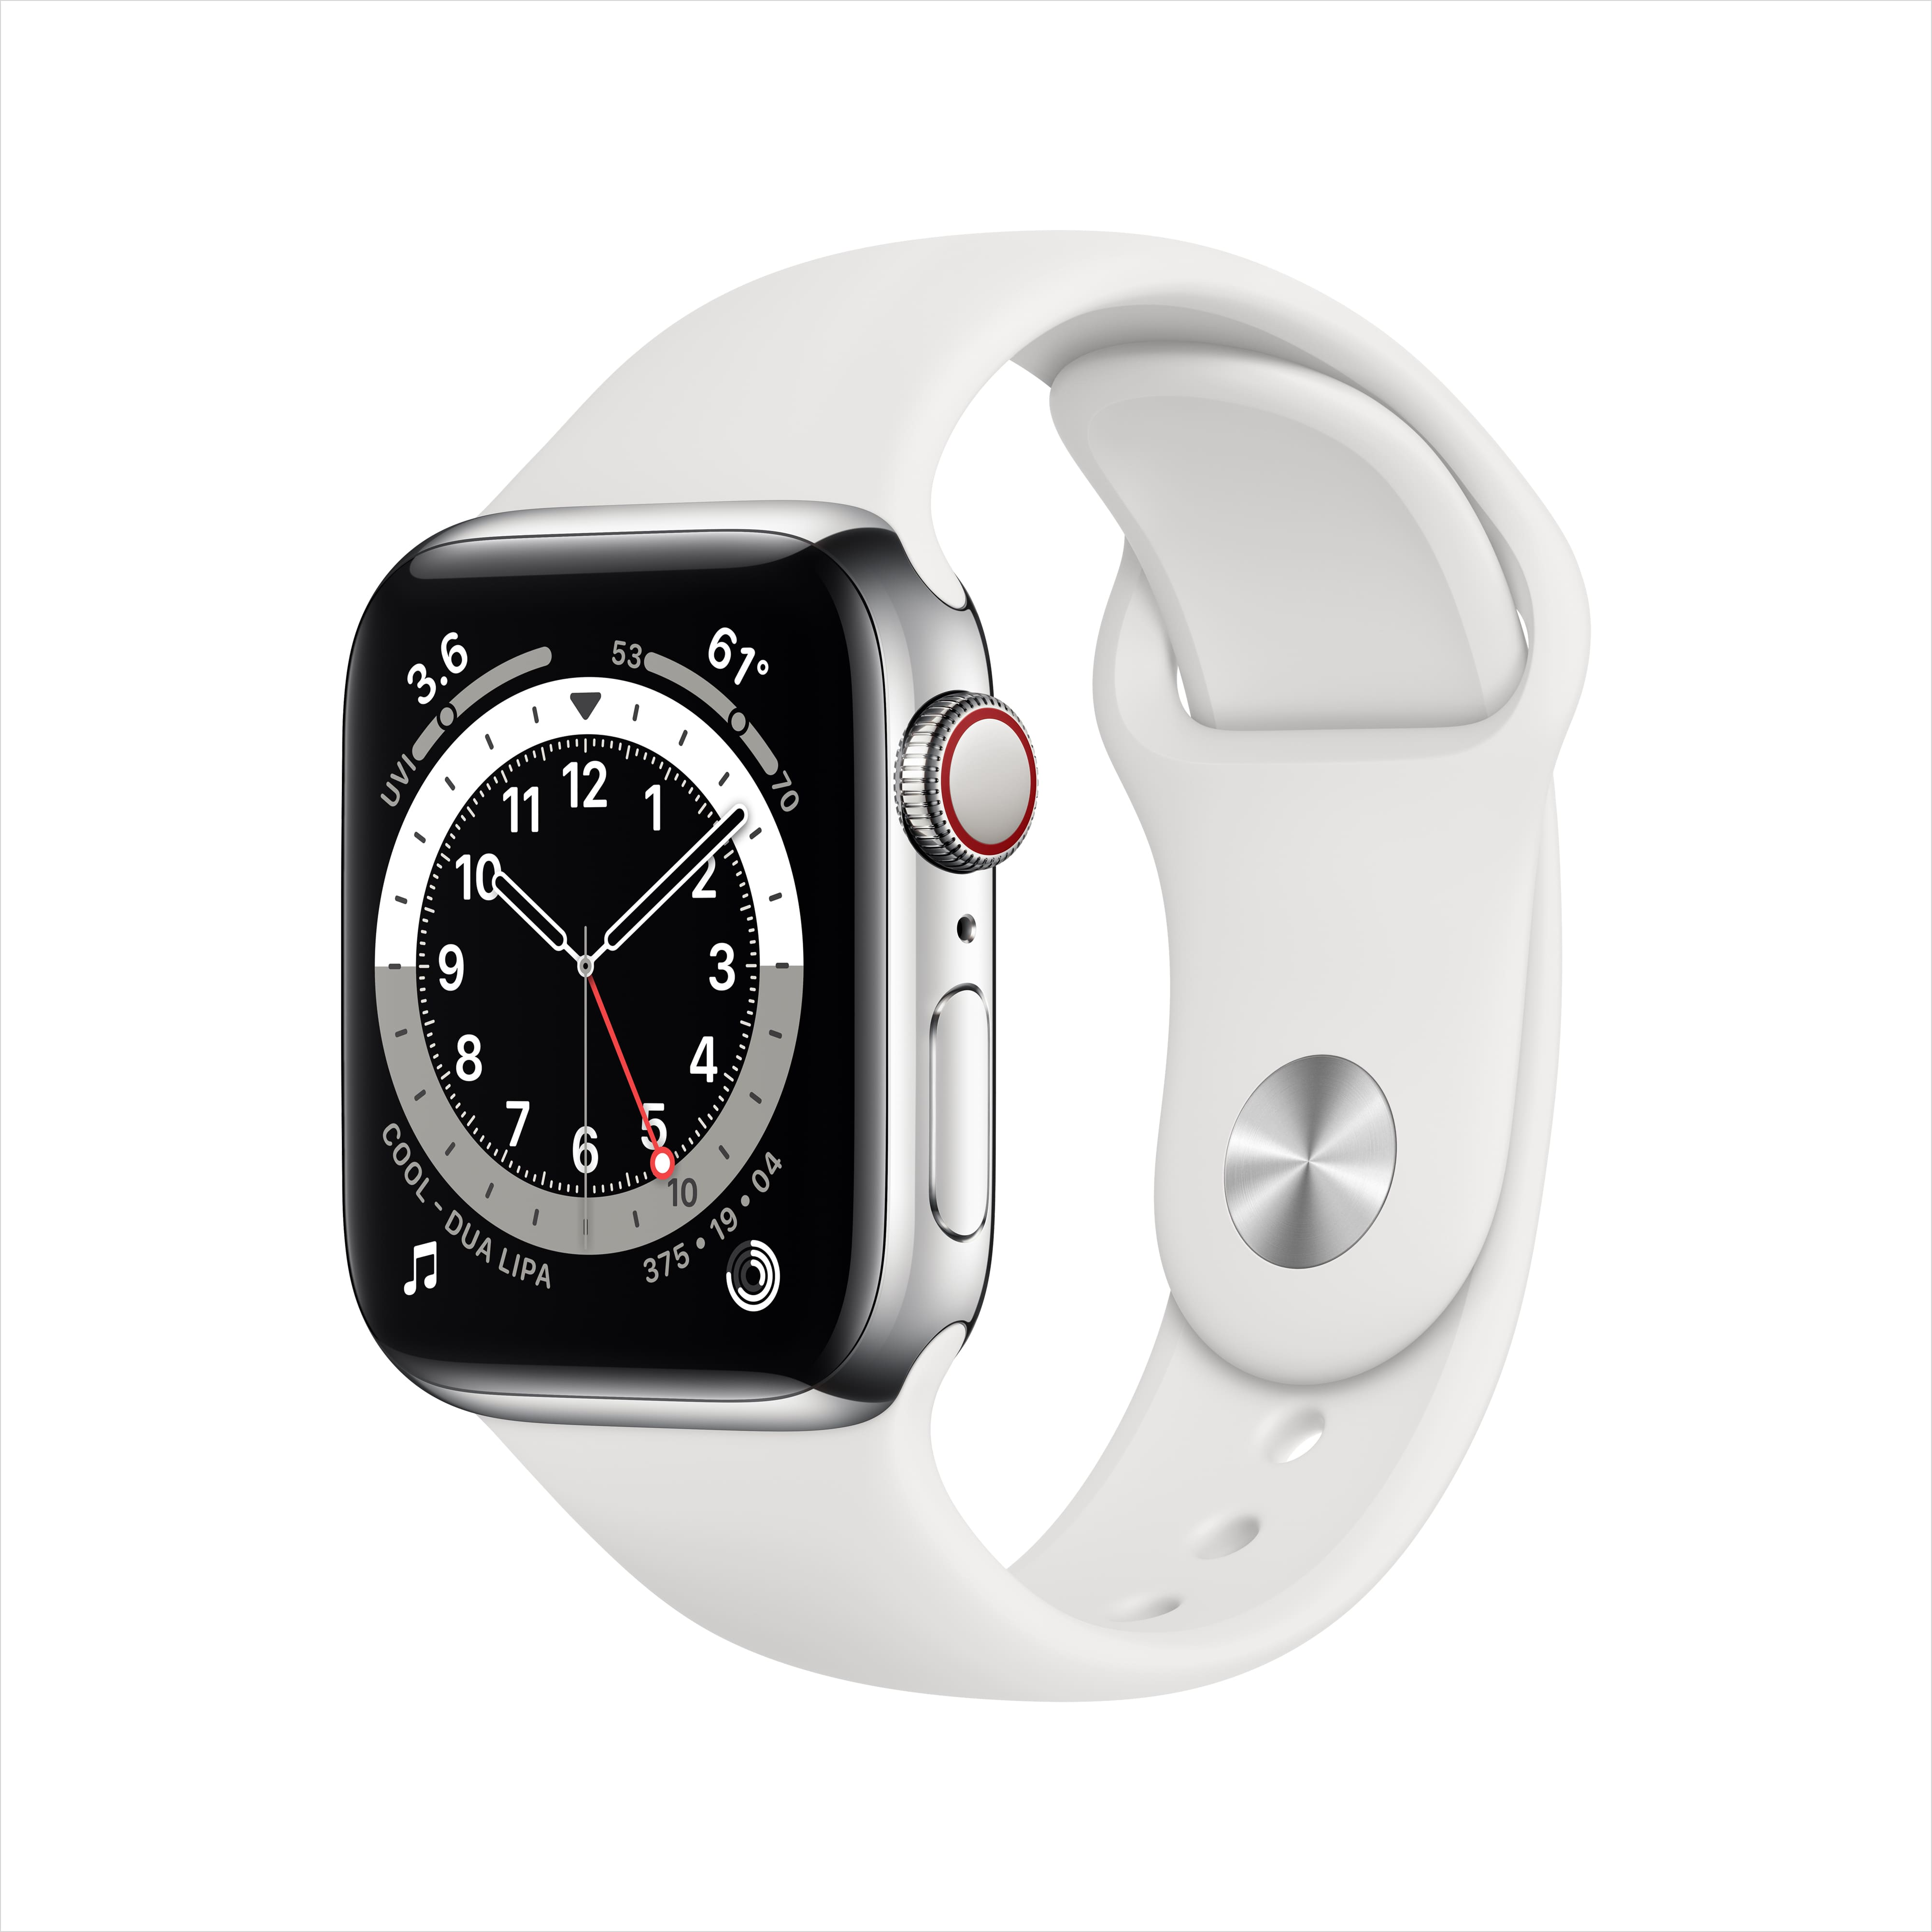 Apple Watch Series 6 GPS + Cellular, 40mm Silver Stainless Steel Case with White Sport Band $555.32 at Walmart